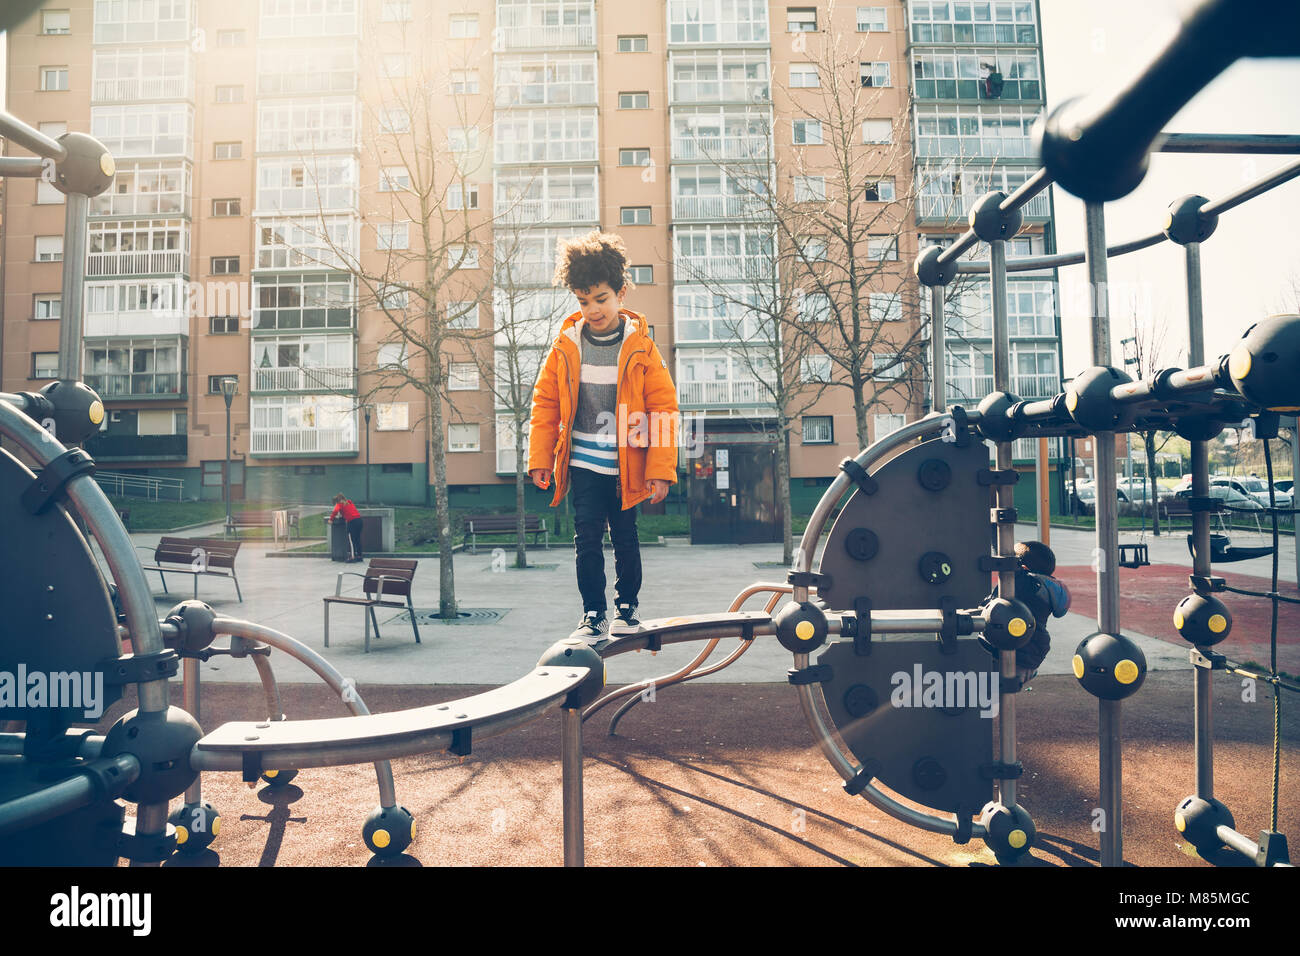 Cute little boy walking the balance bar in an urban playground in a sunny day - Stock Image